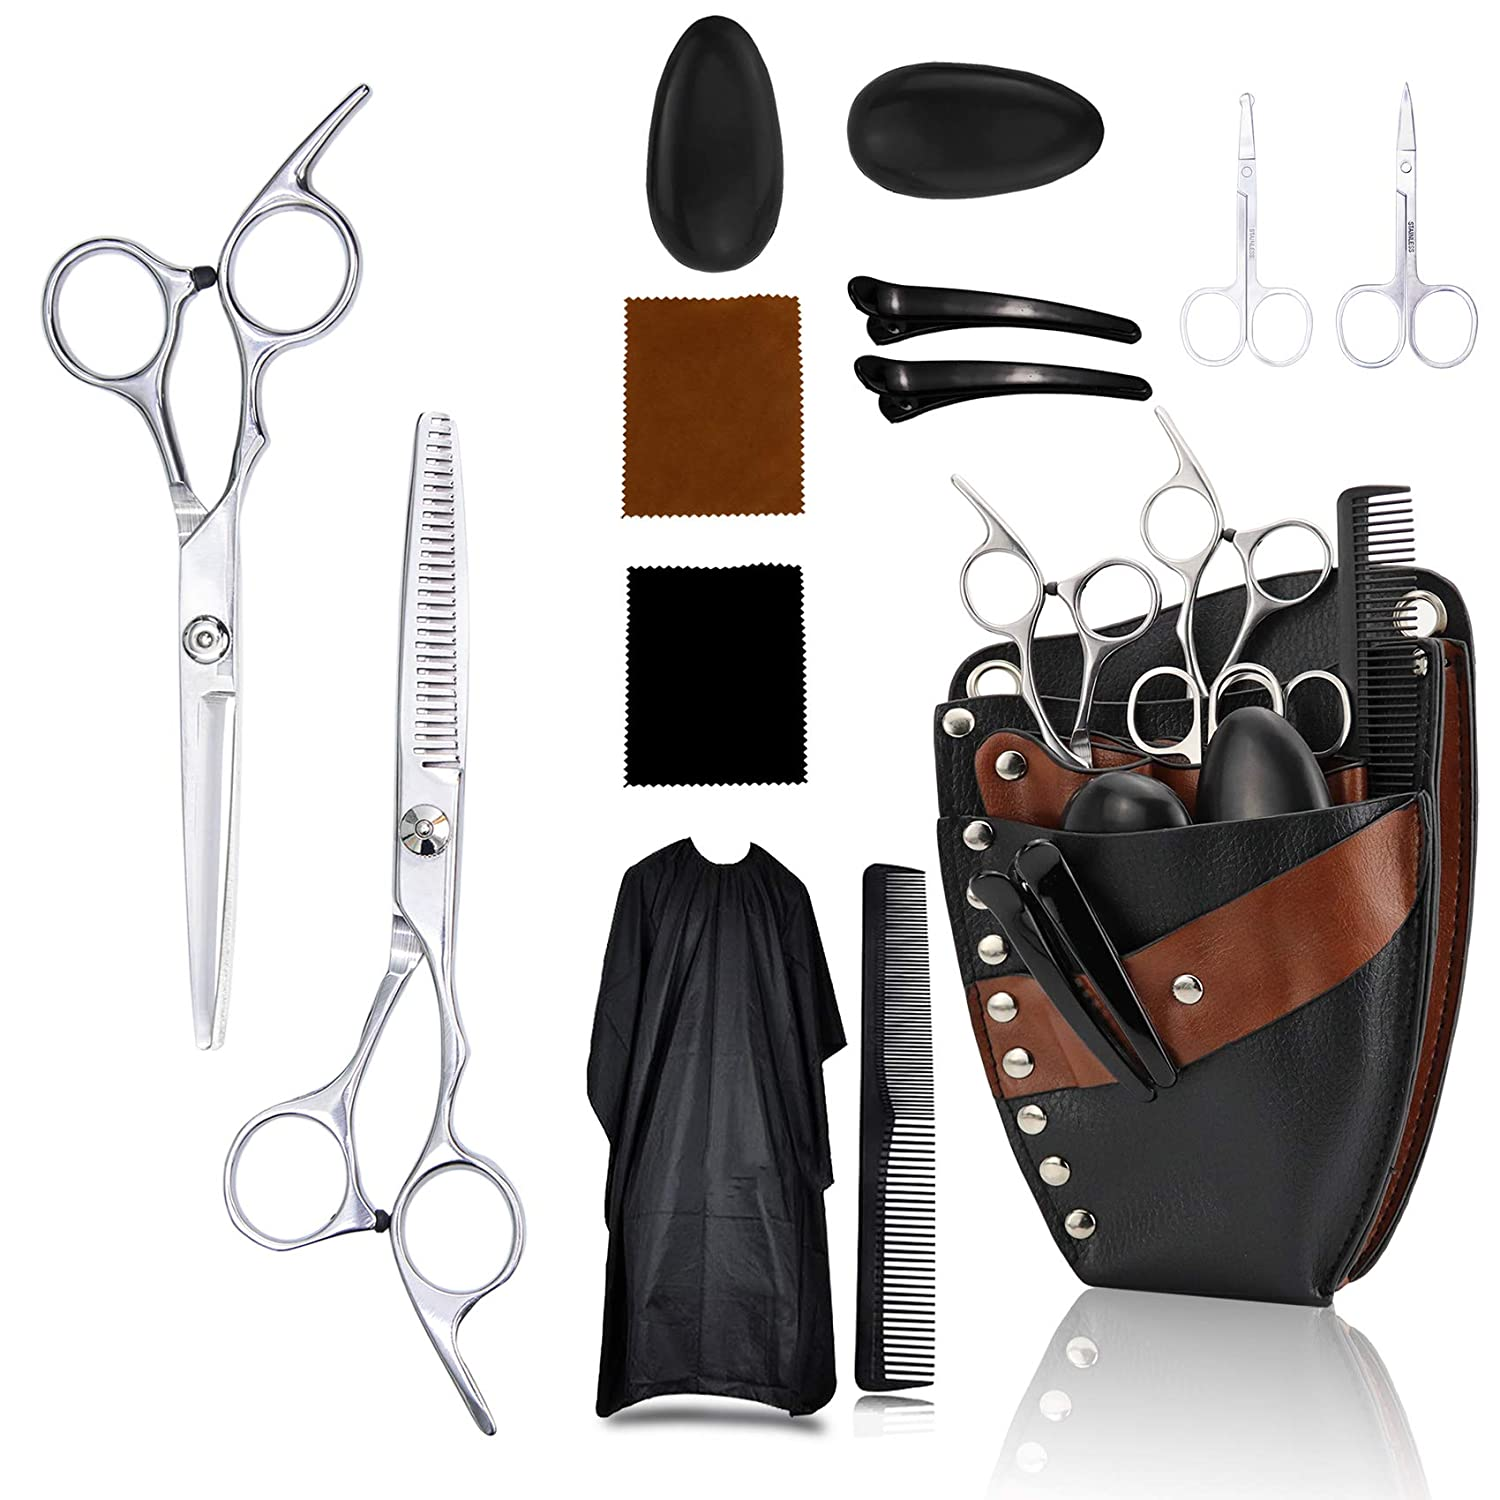 Hair Cutting Scissors Set Hairdressing with Exquisite Tool Superlatite Hairc Easy-to-use